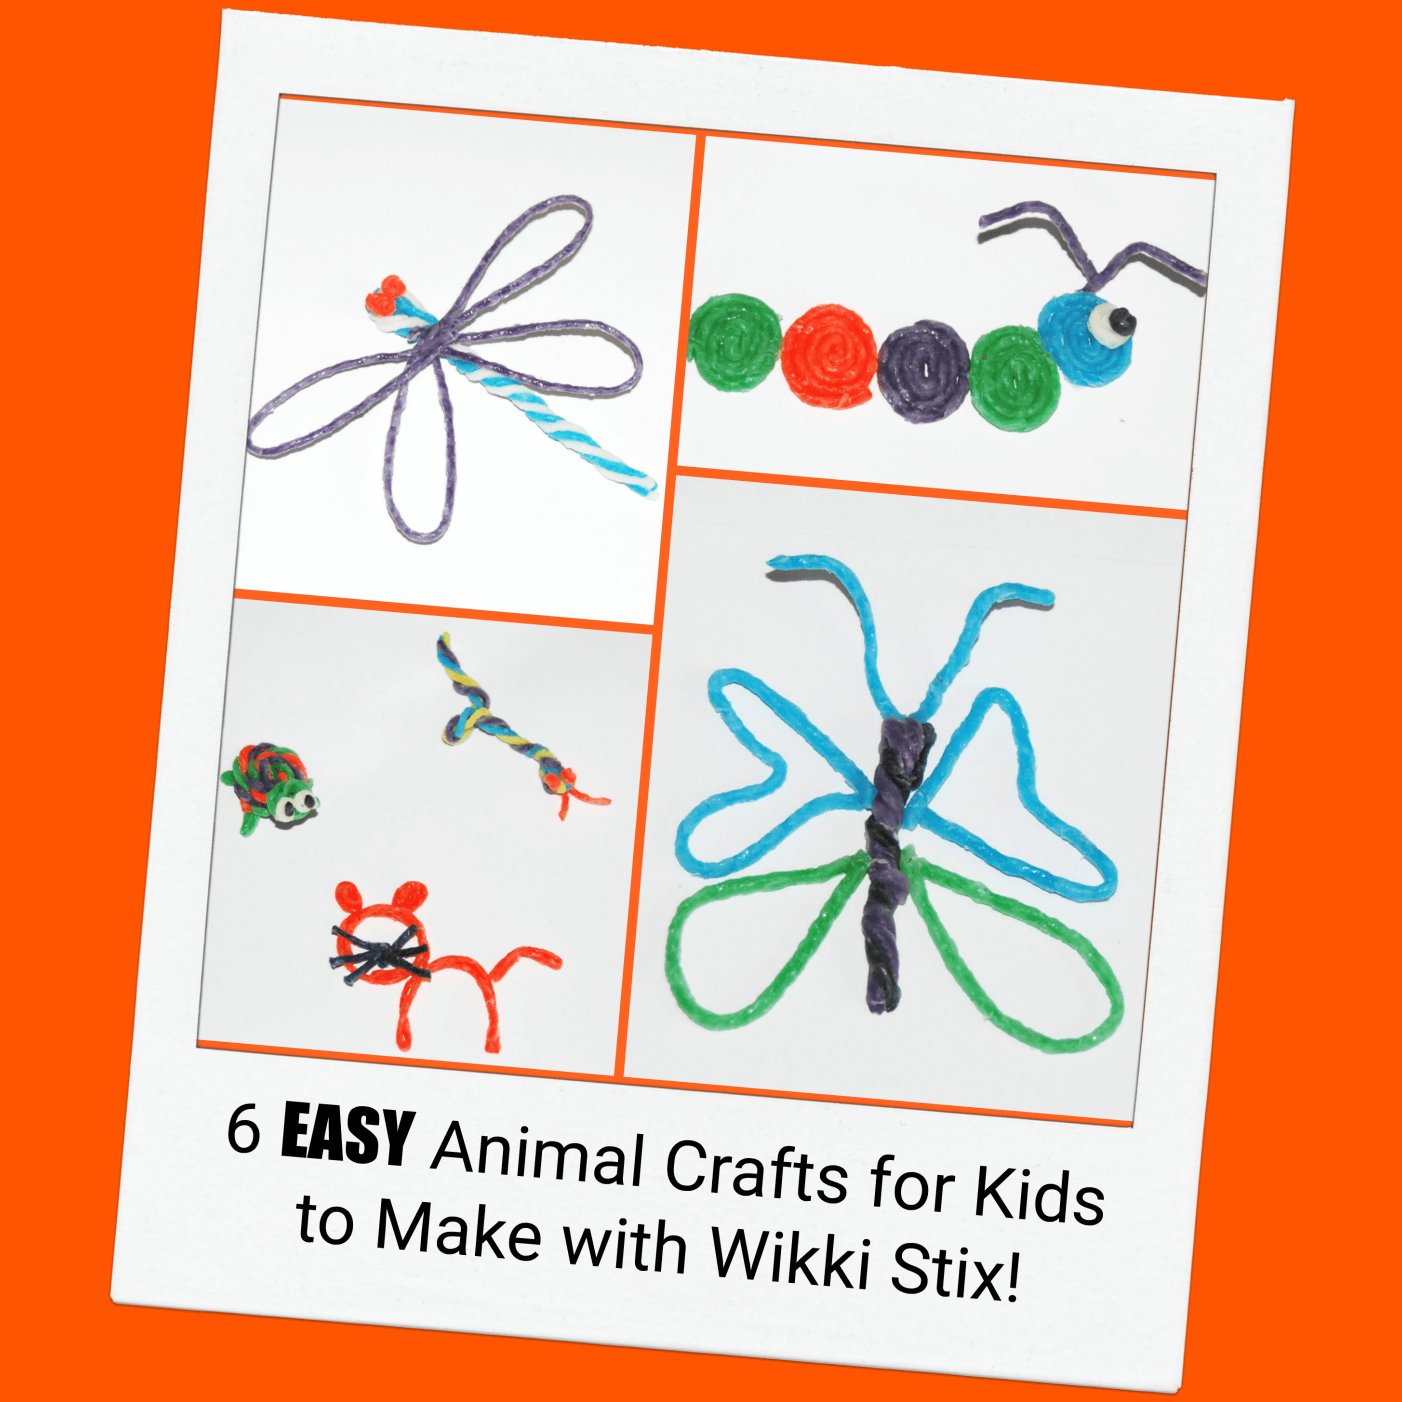 6 EASY Animal Crafts for Kids to Create!